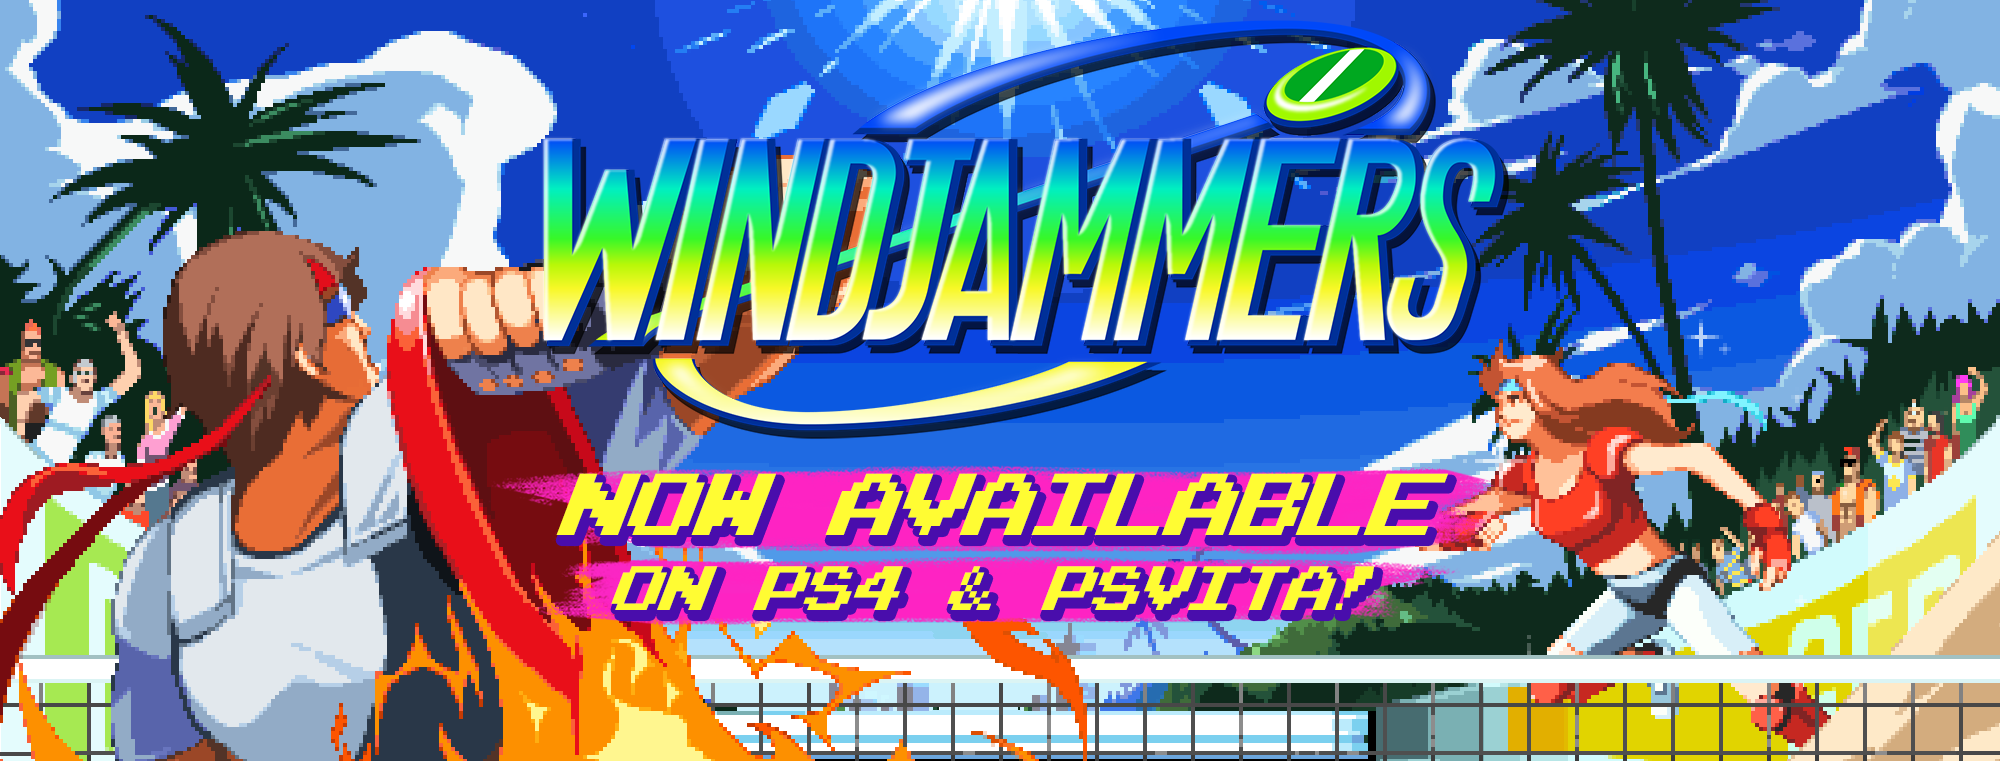 Windjammers is now available on PS4 and PS Vita!